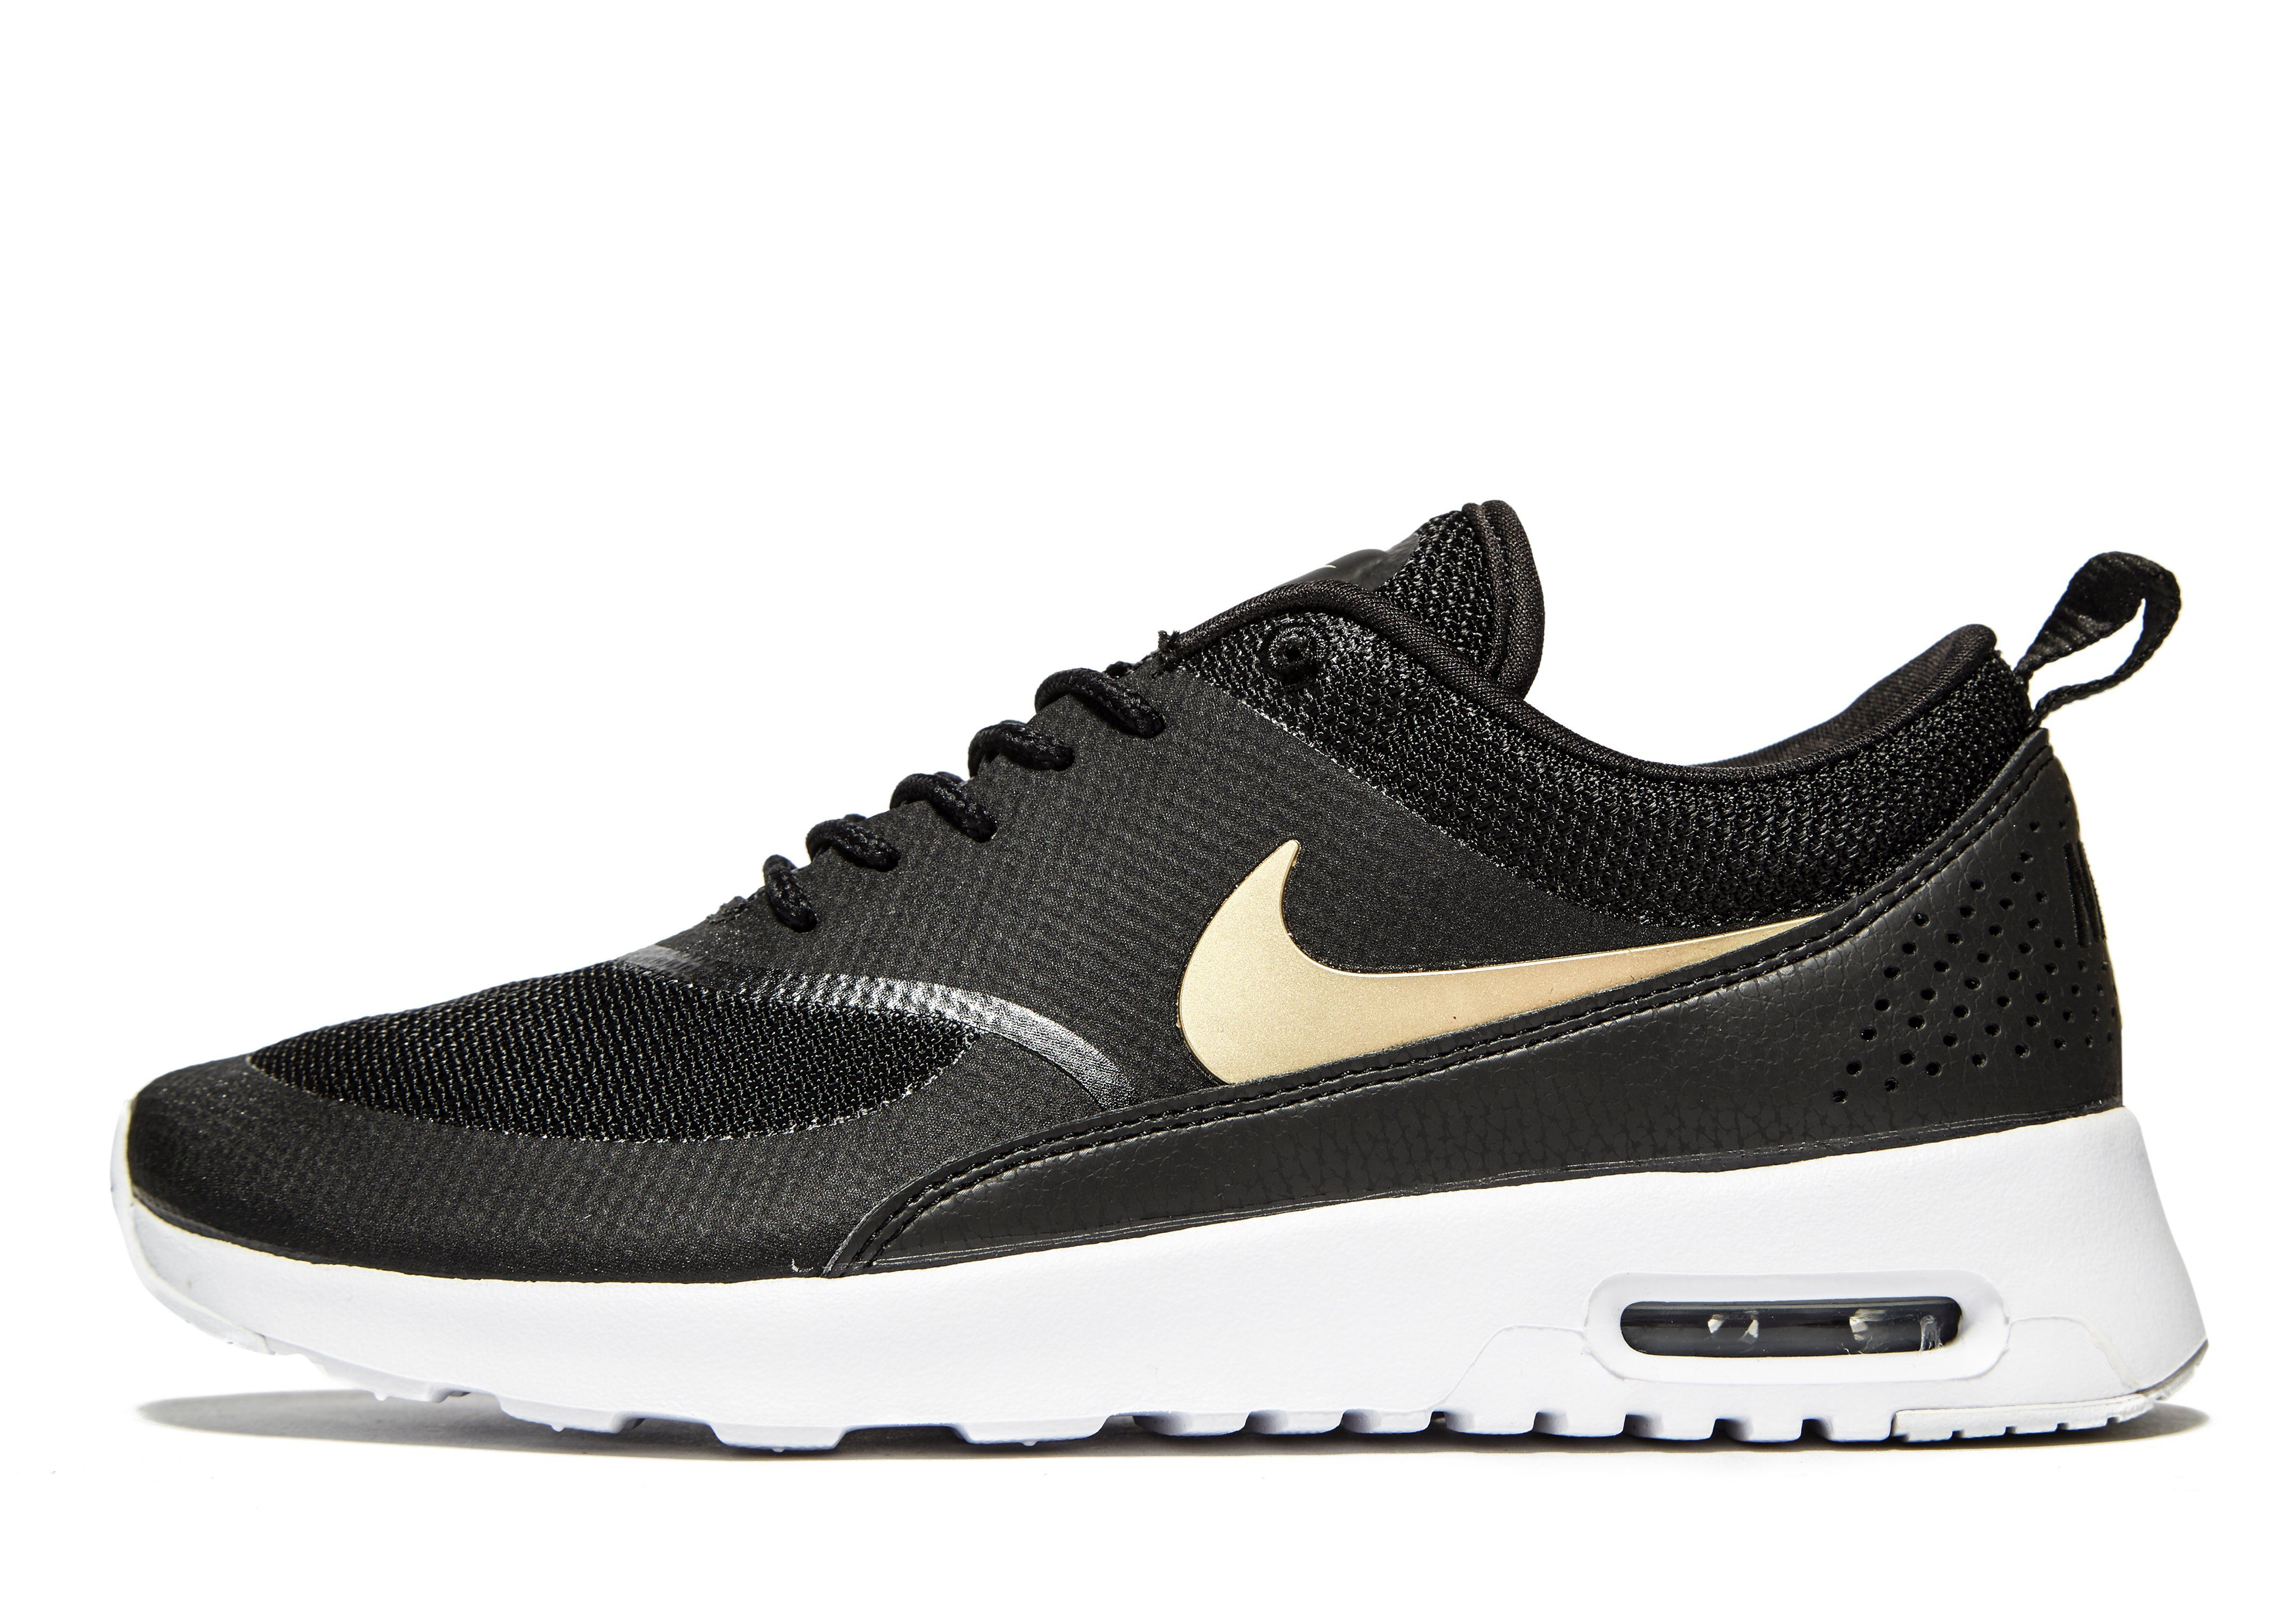 Nike Fashion/Mode - Air Max Thea - Taille 40 - Noir